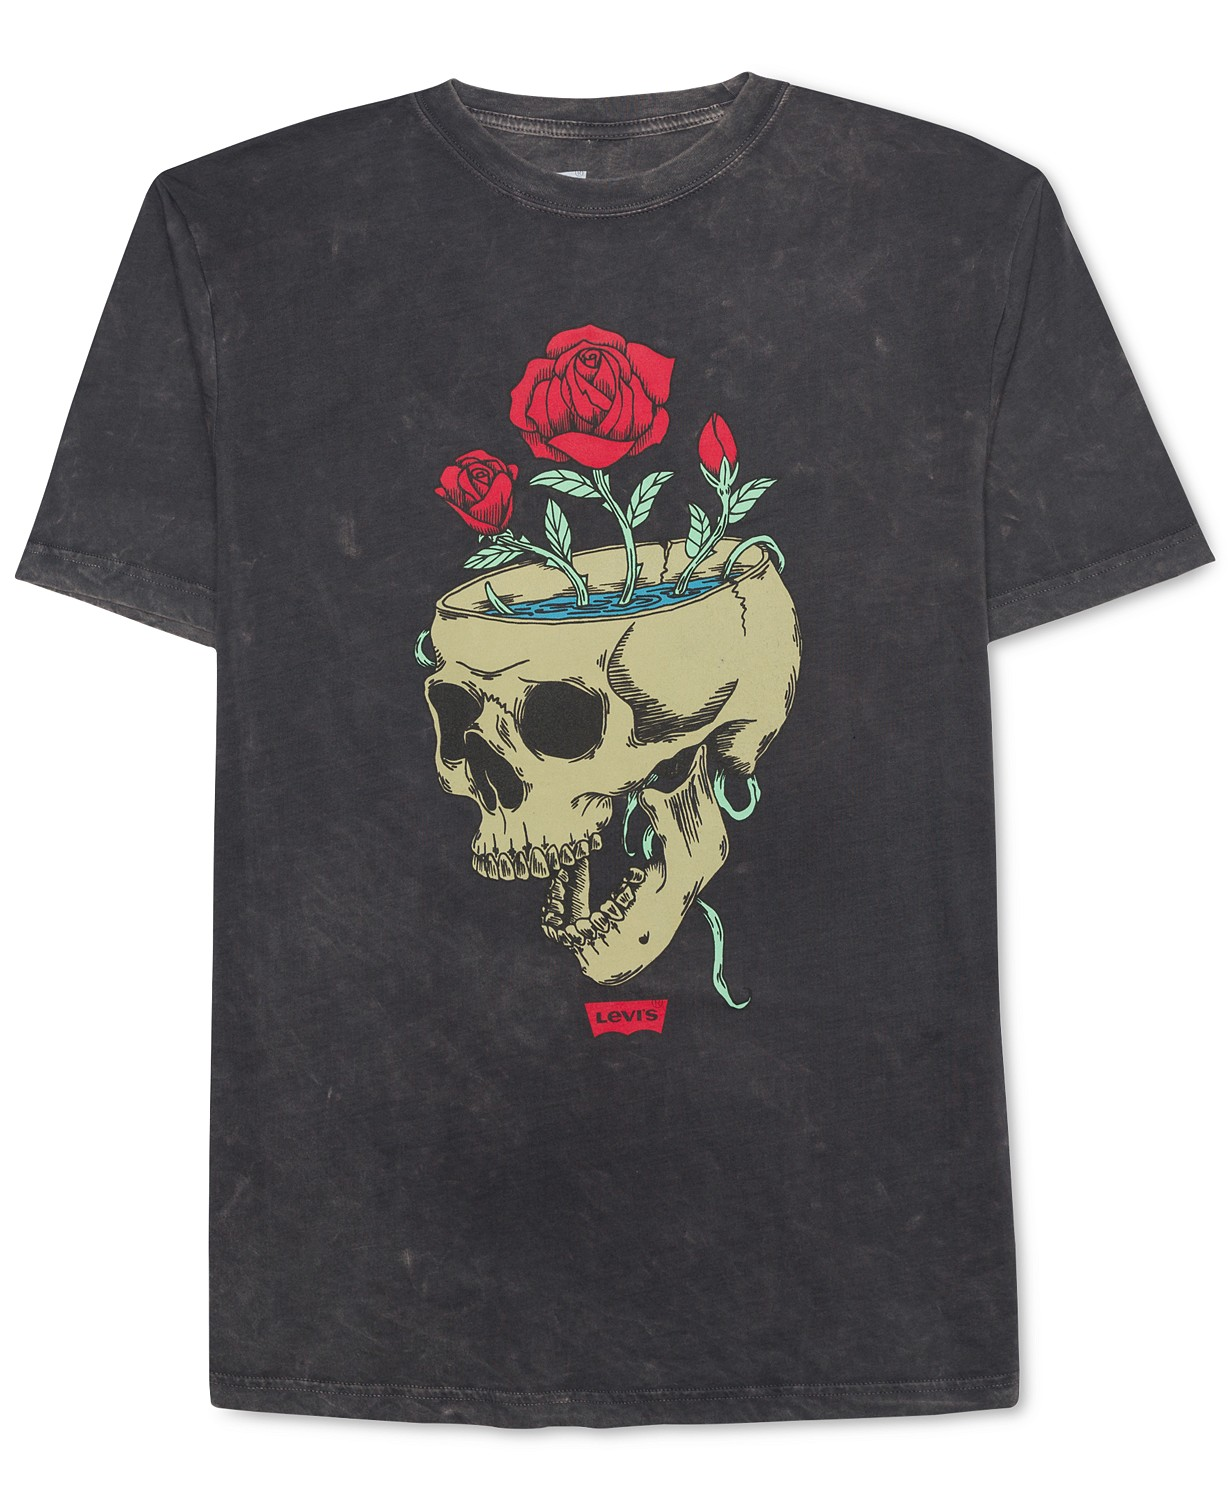 New-Levi-039-s-Mens-Black-Size-XL-Skull-Roses-Graphic-Print-Crewneck-Tee-Shirt-099 thumbnail 1